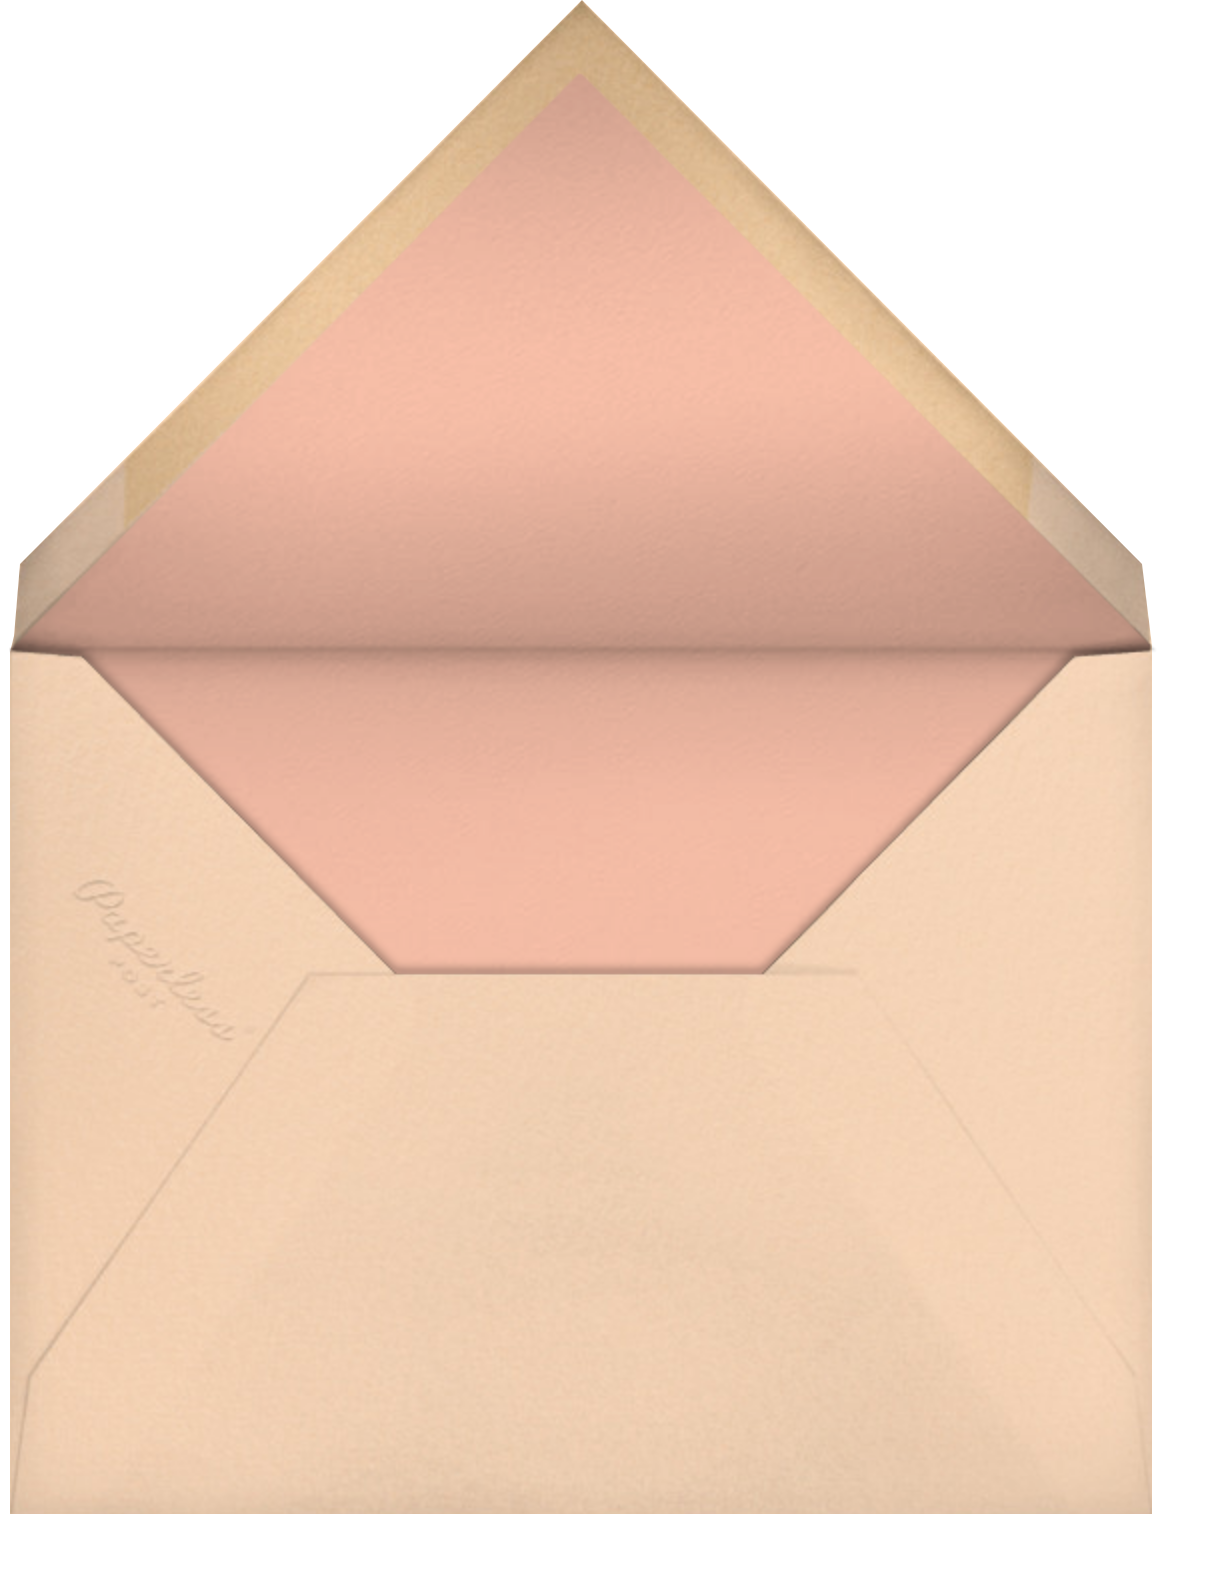 Cowgirl - Paperless Post - Bachelorette party - envelope back